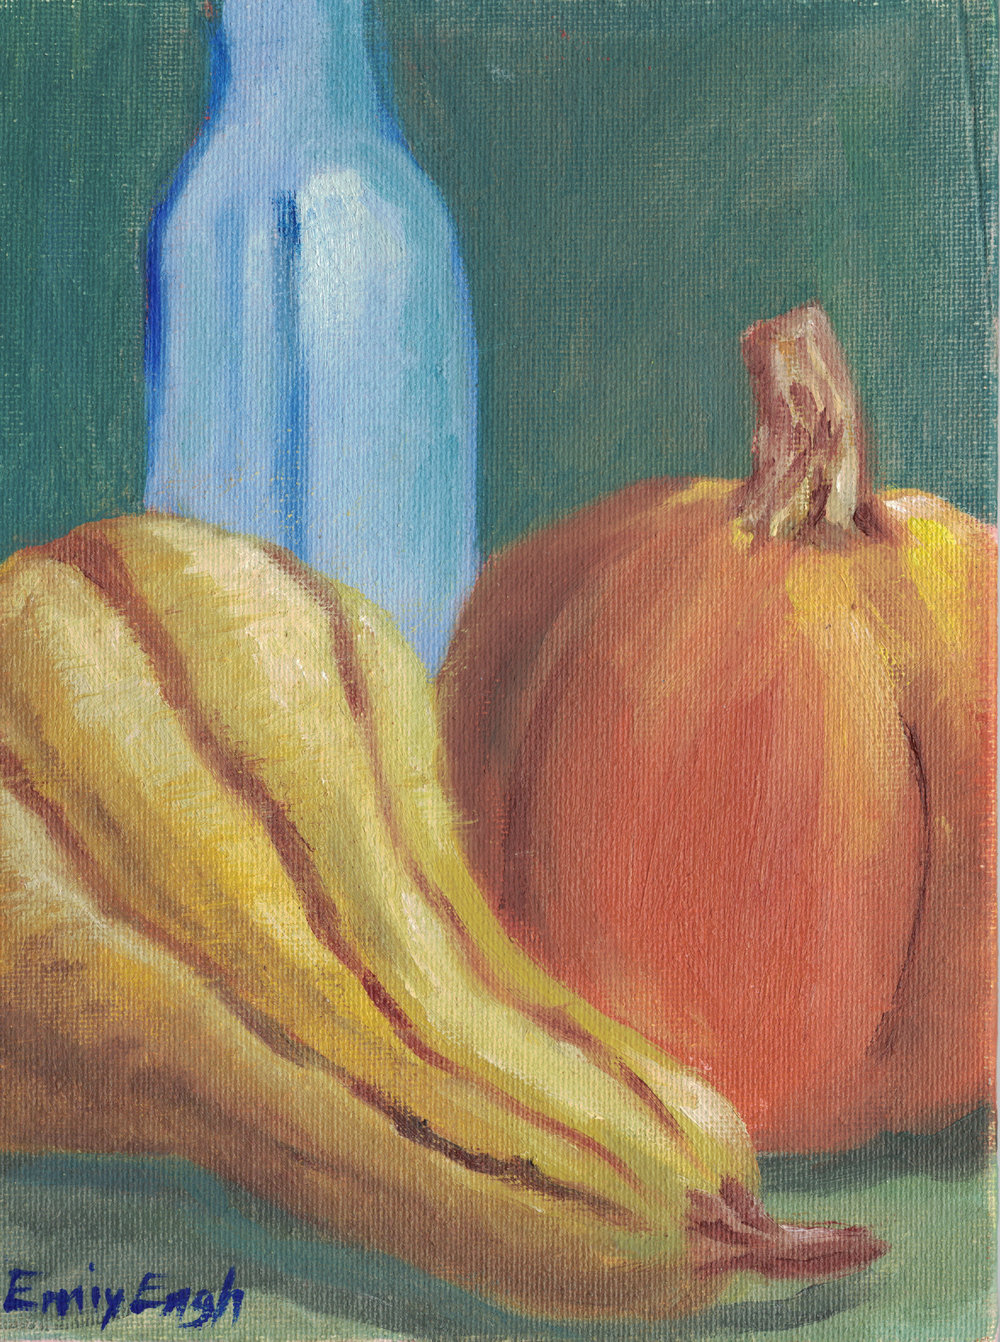 Squash 6X8 Inch    Purchase Original Painting Here